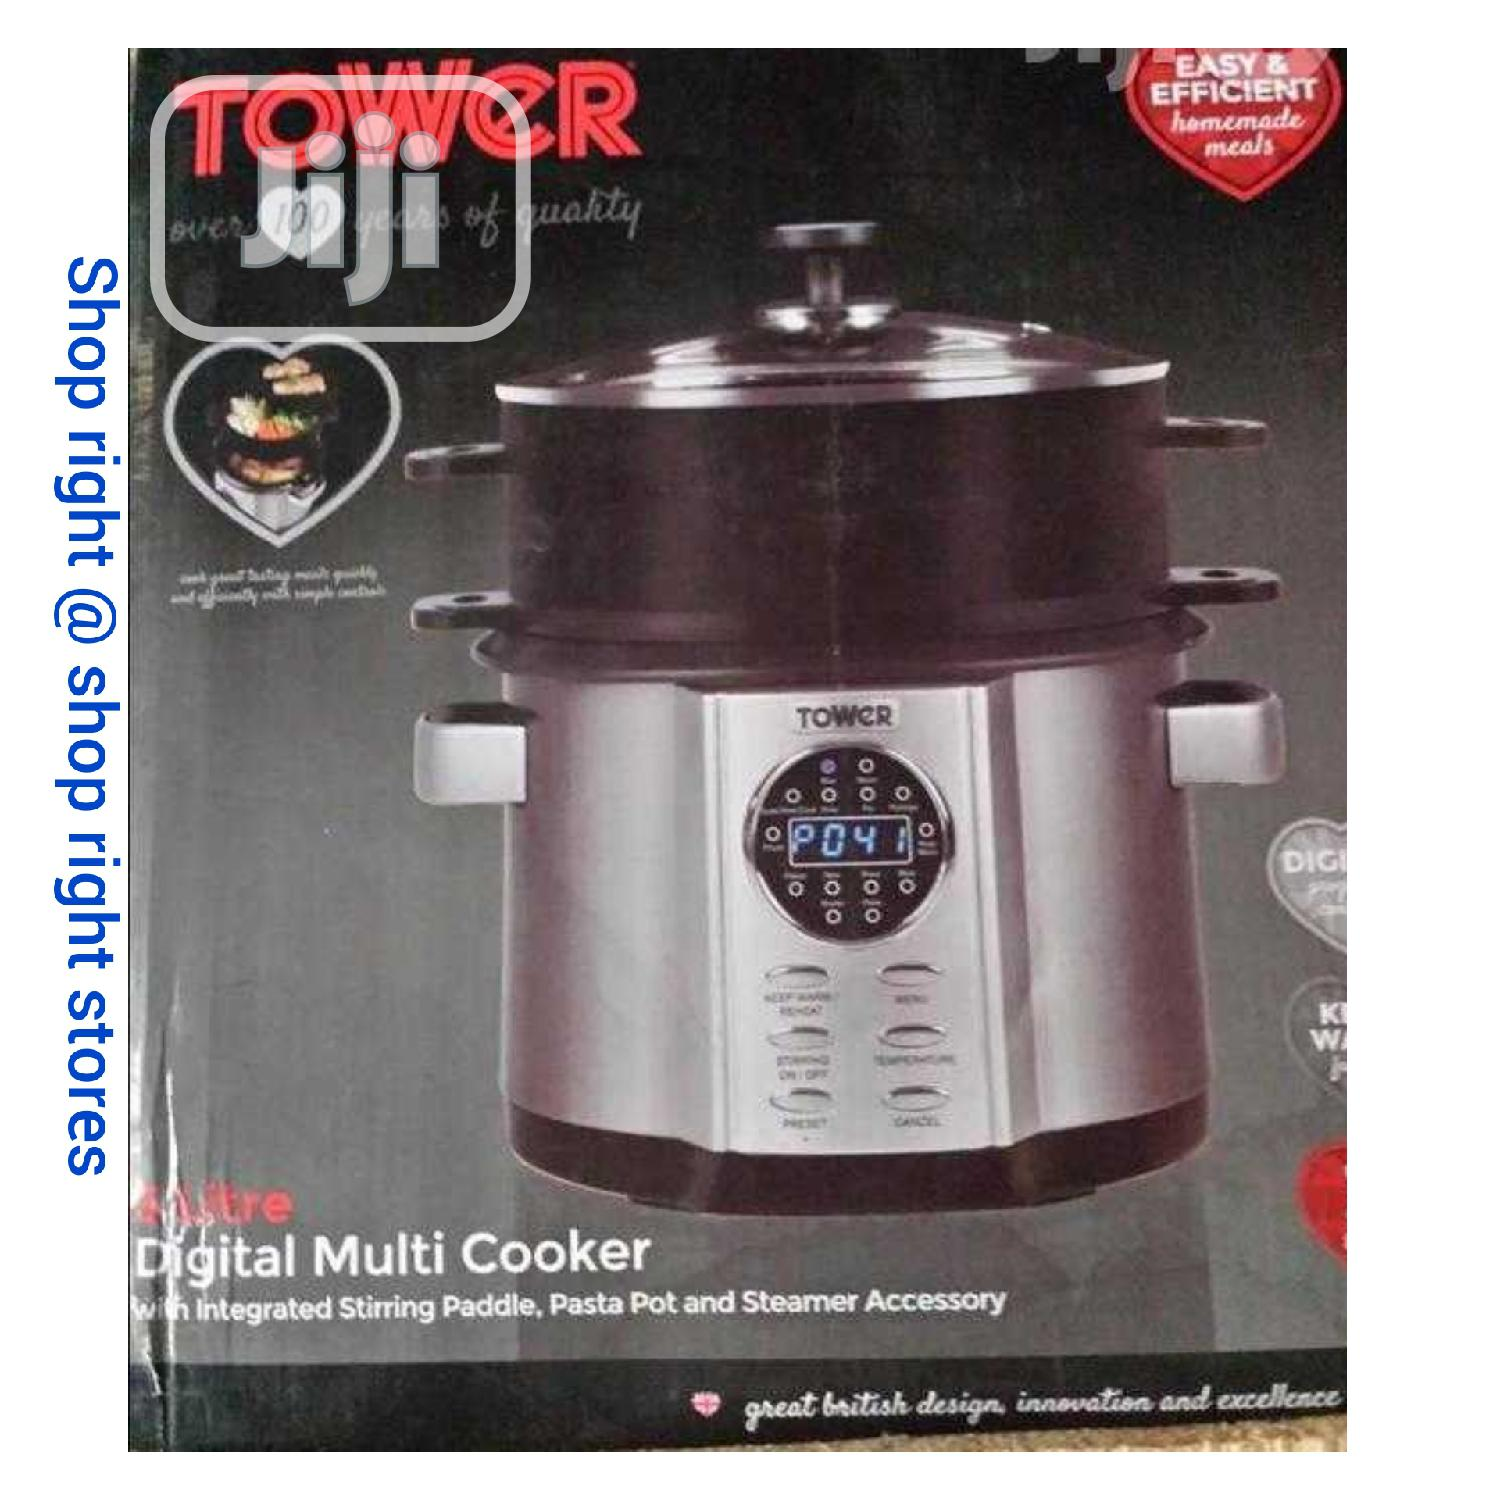 Tower 5layers Multi Cooker